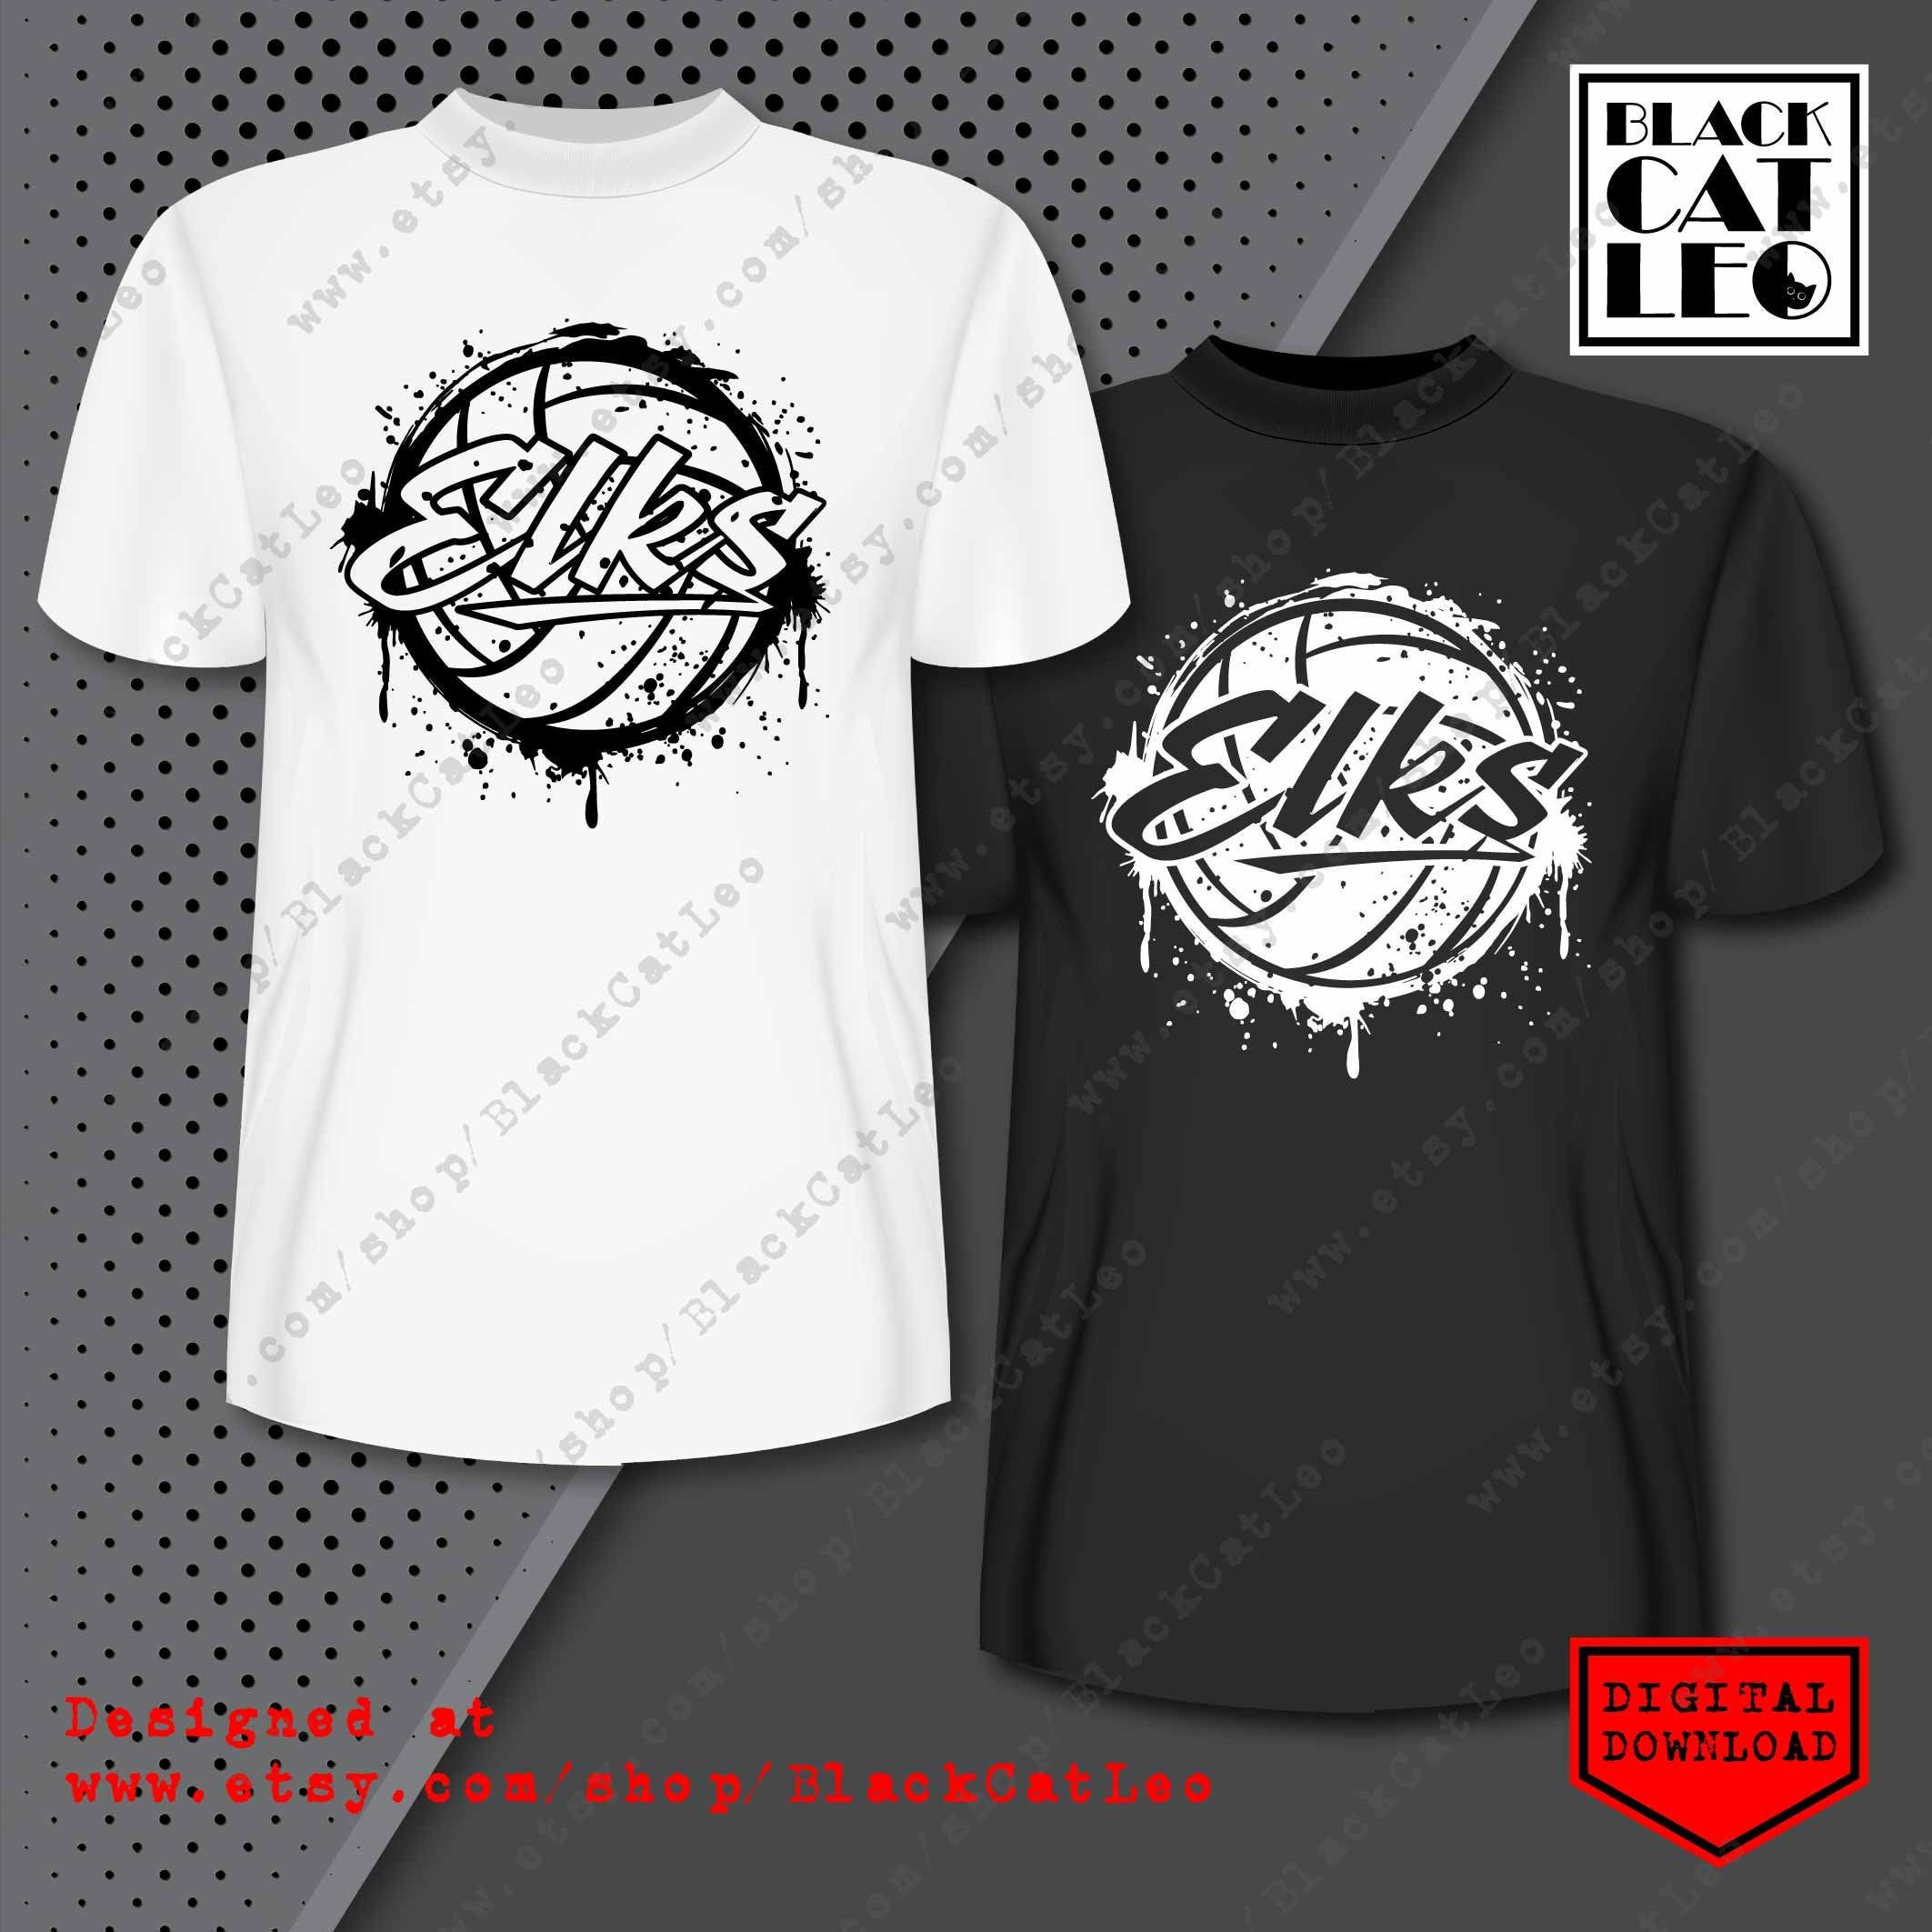 Elks t shirt design sublimation png Grunge Volleyball ball